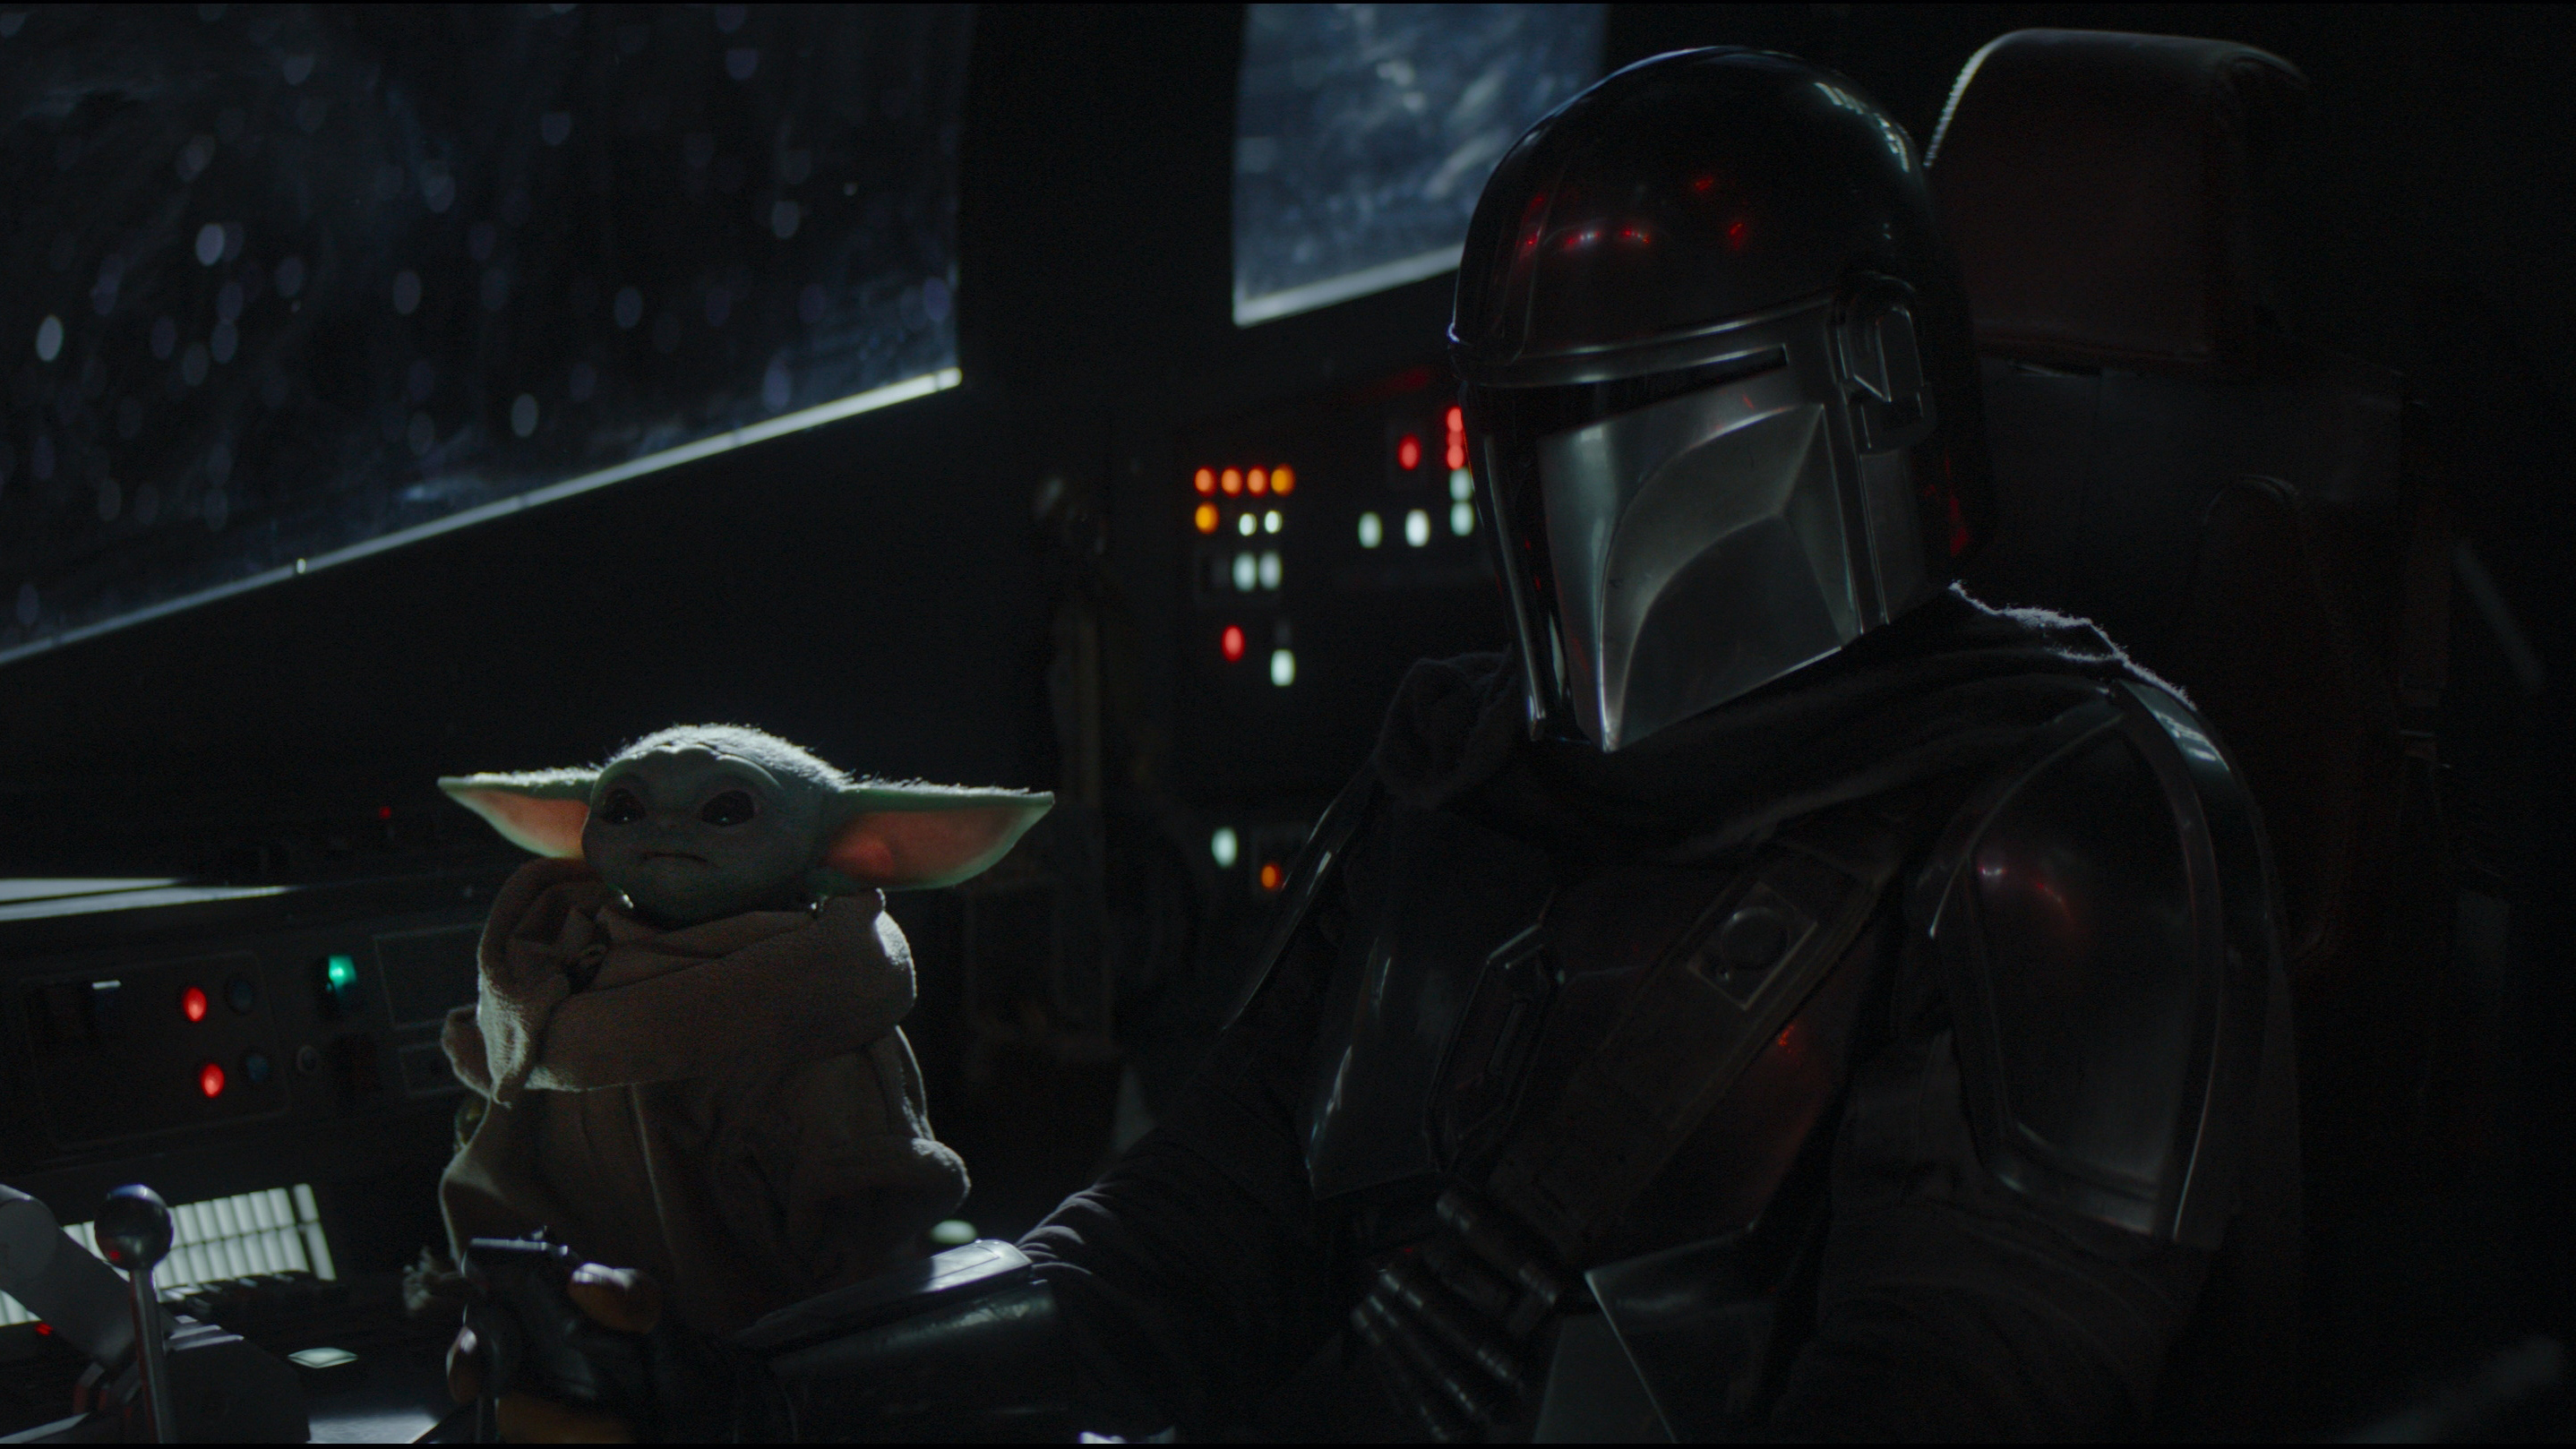 'The Mandalorian' brings a major fan favorite into the 'Star Wars' live-action universe